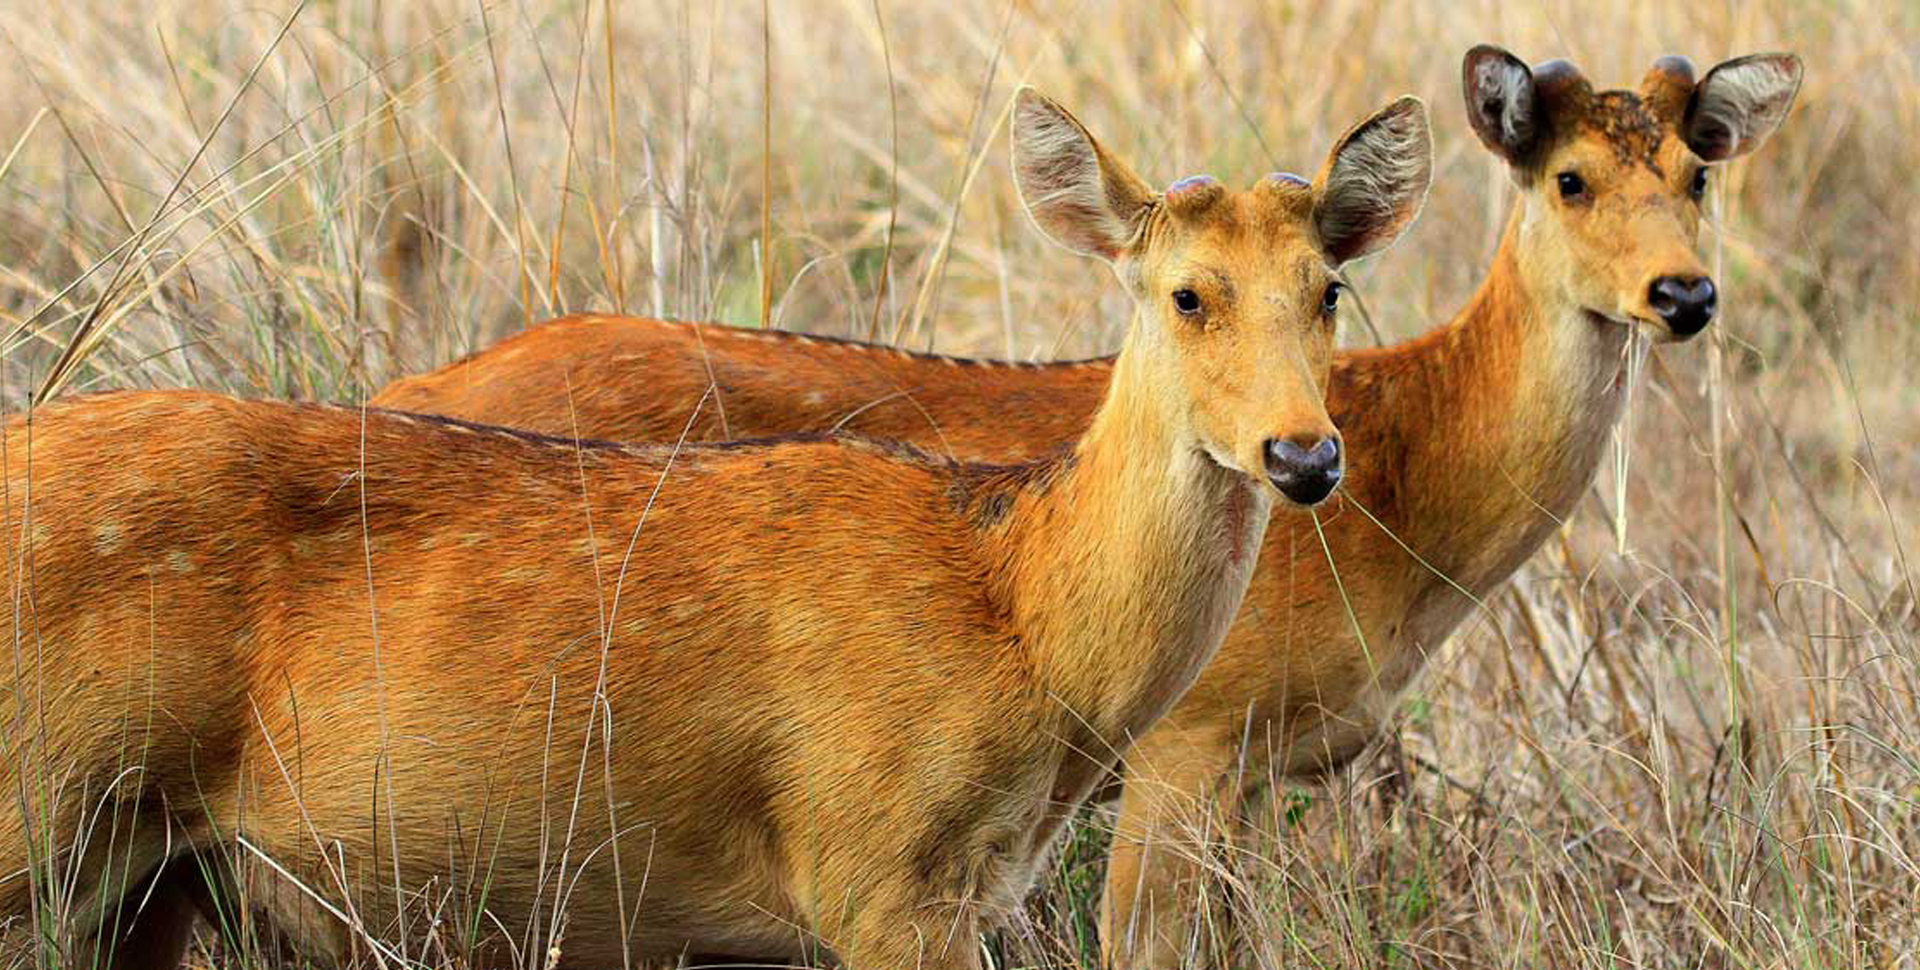 Animals in Kanha National Park